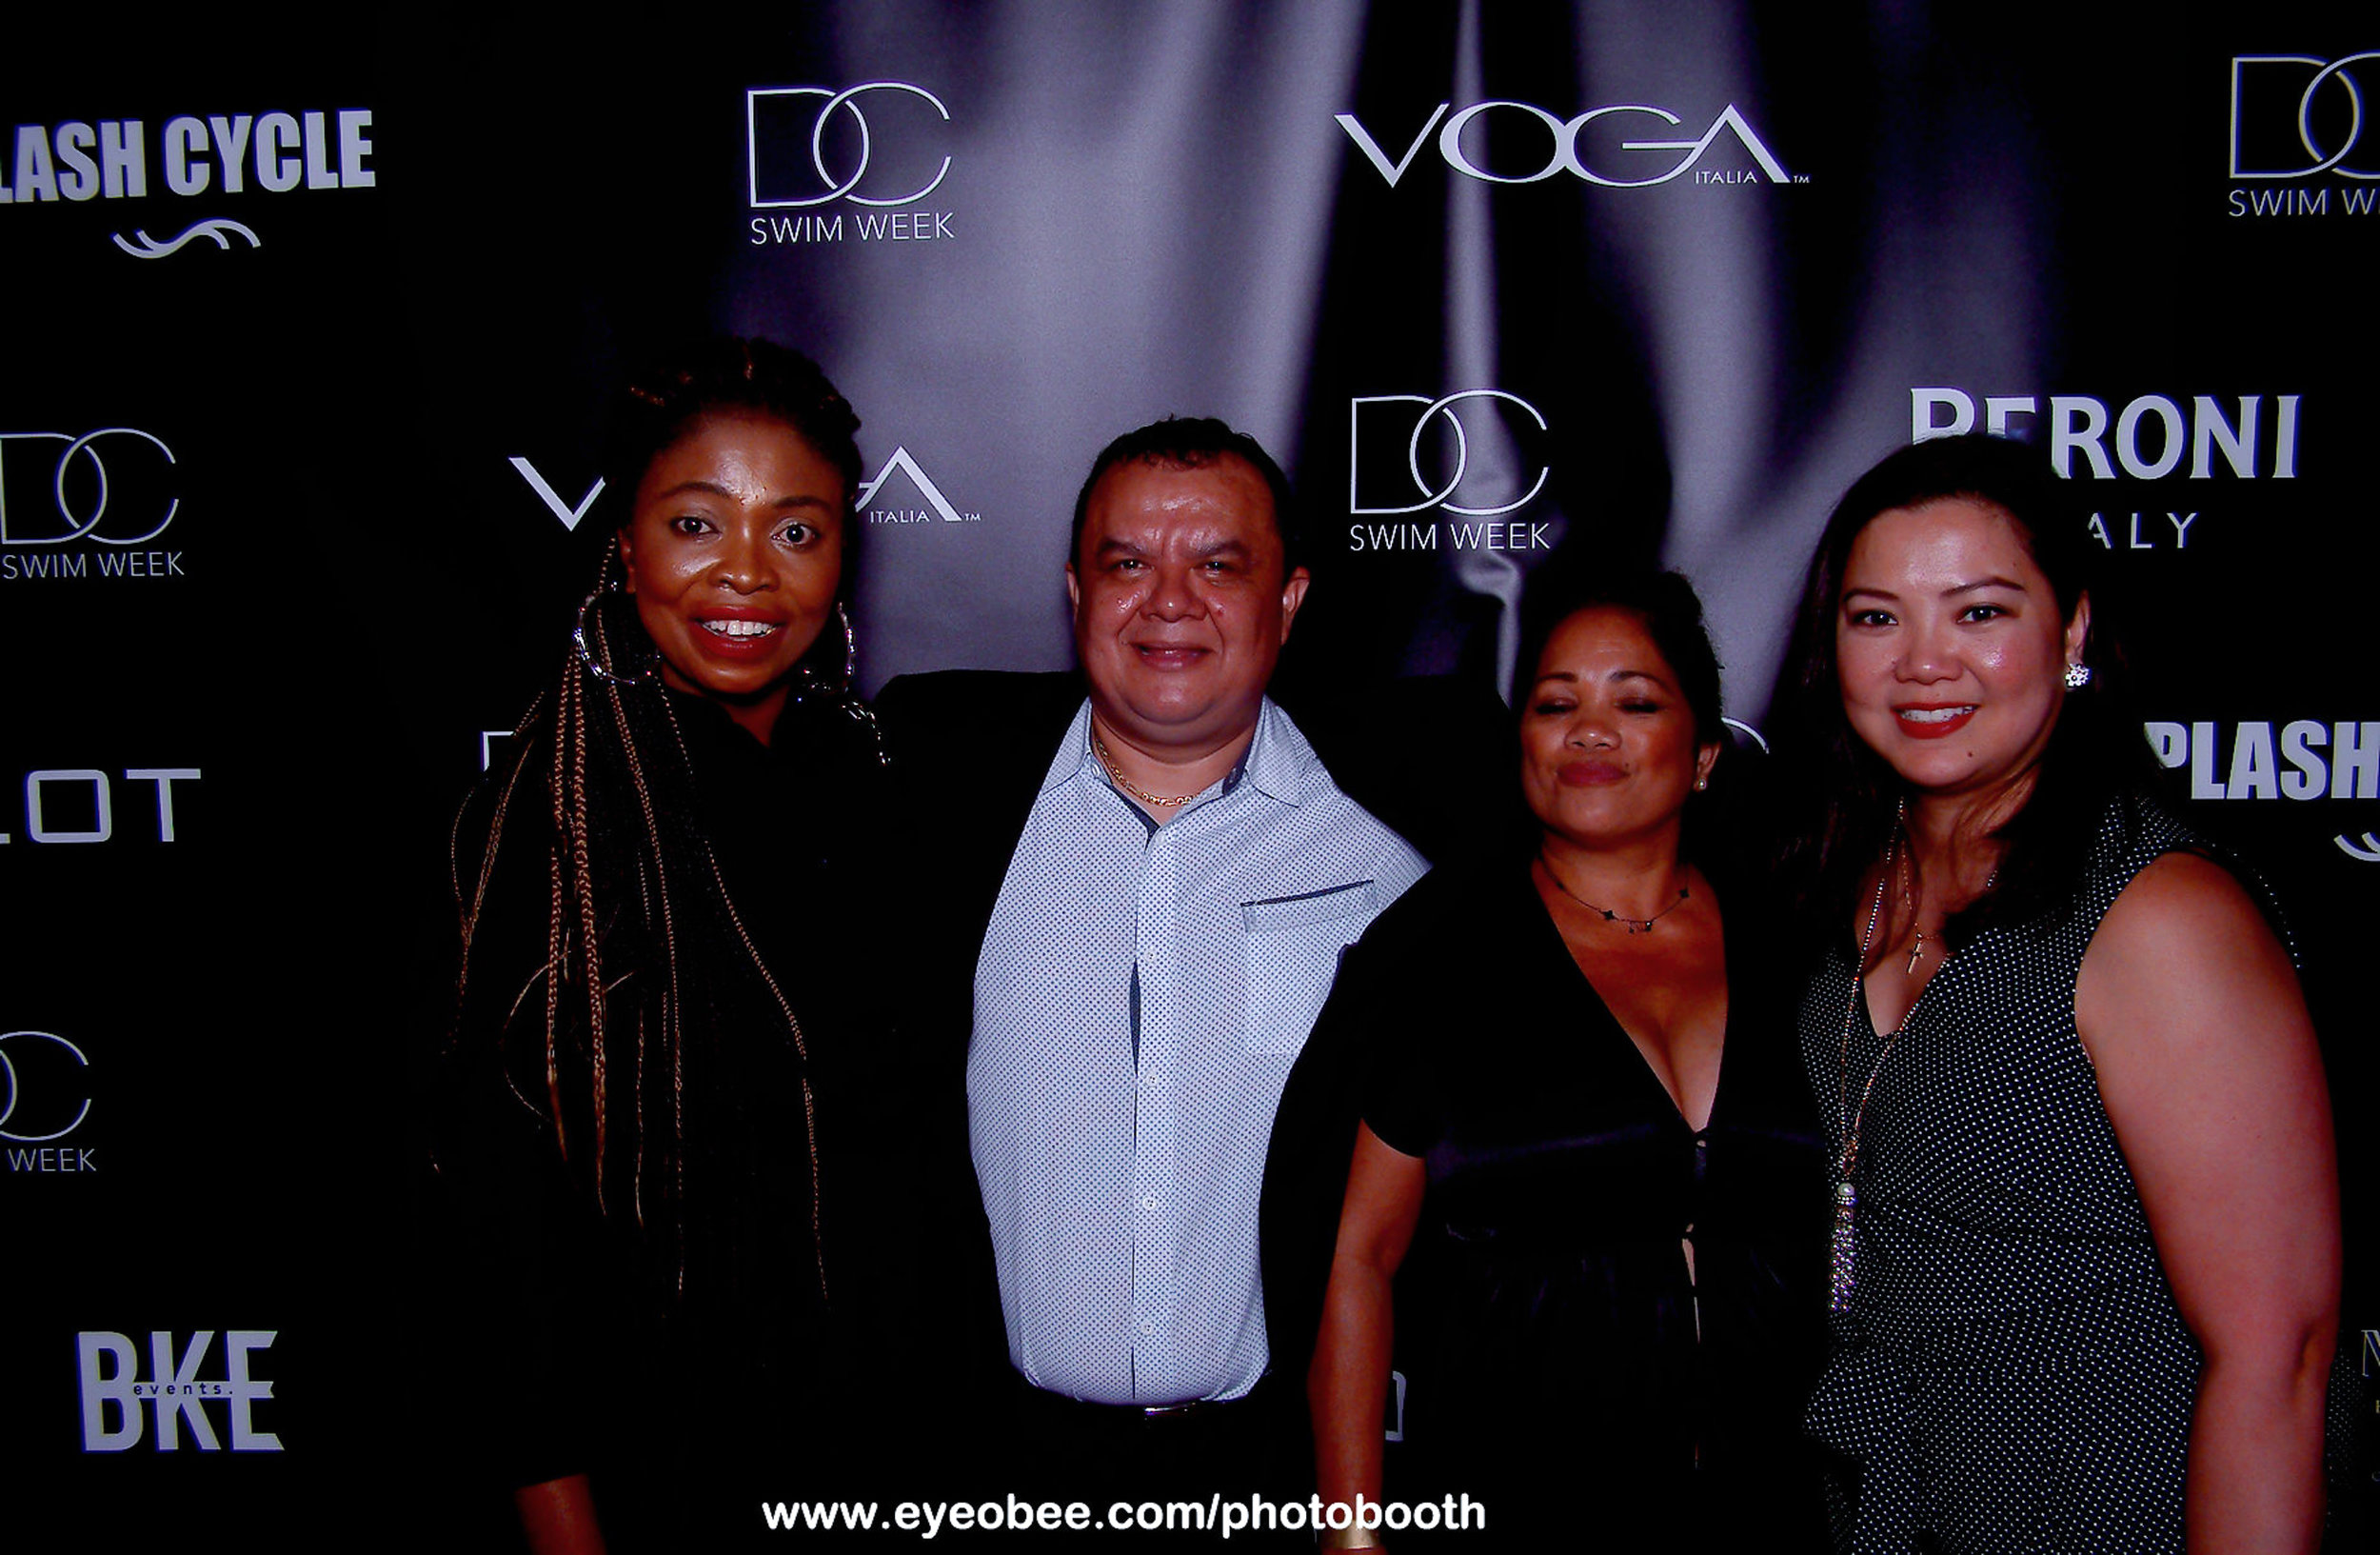 eyeobee PhotoBooth - DCSW-229.jpg